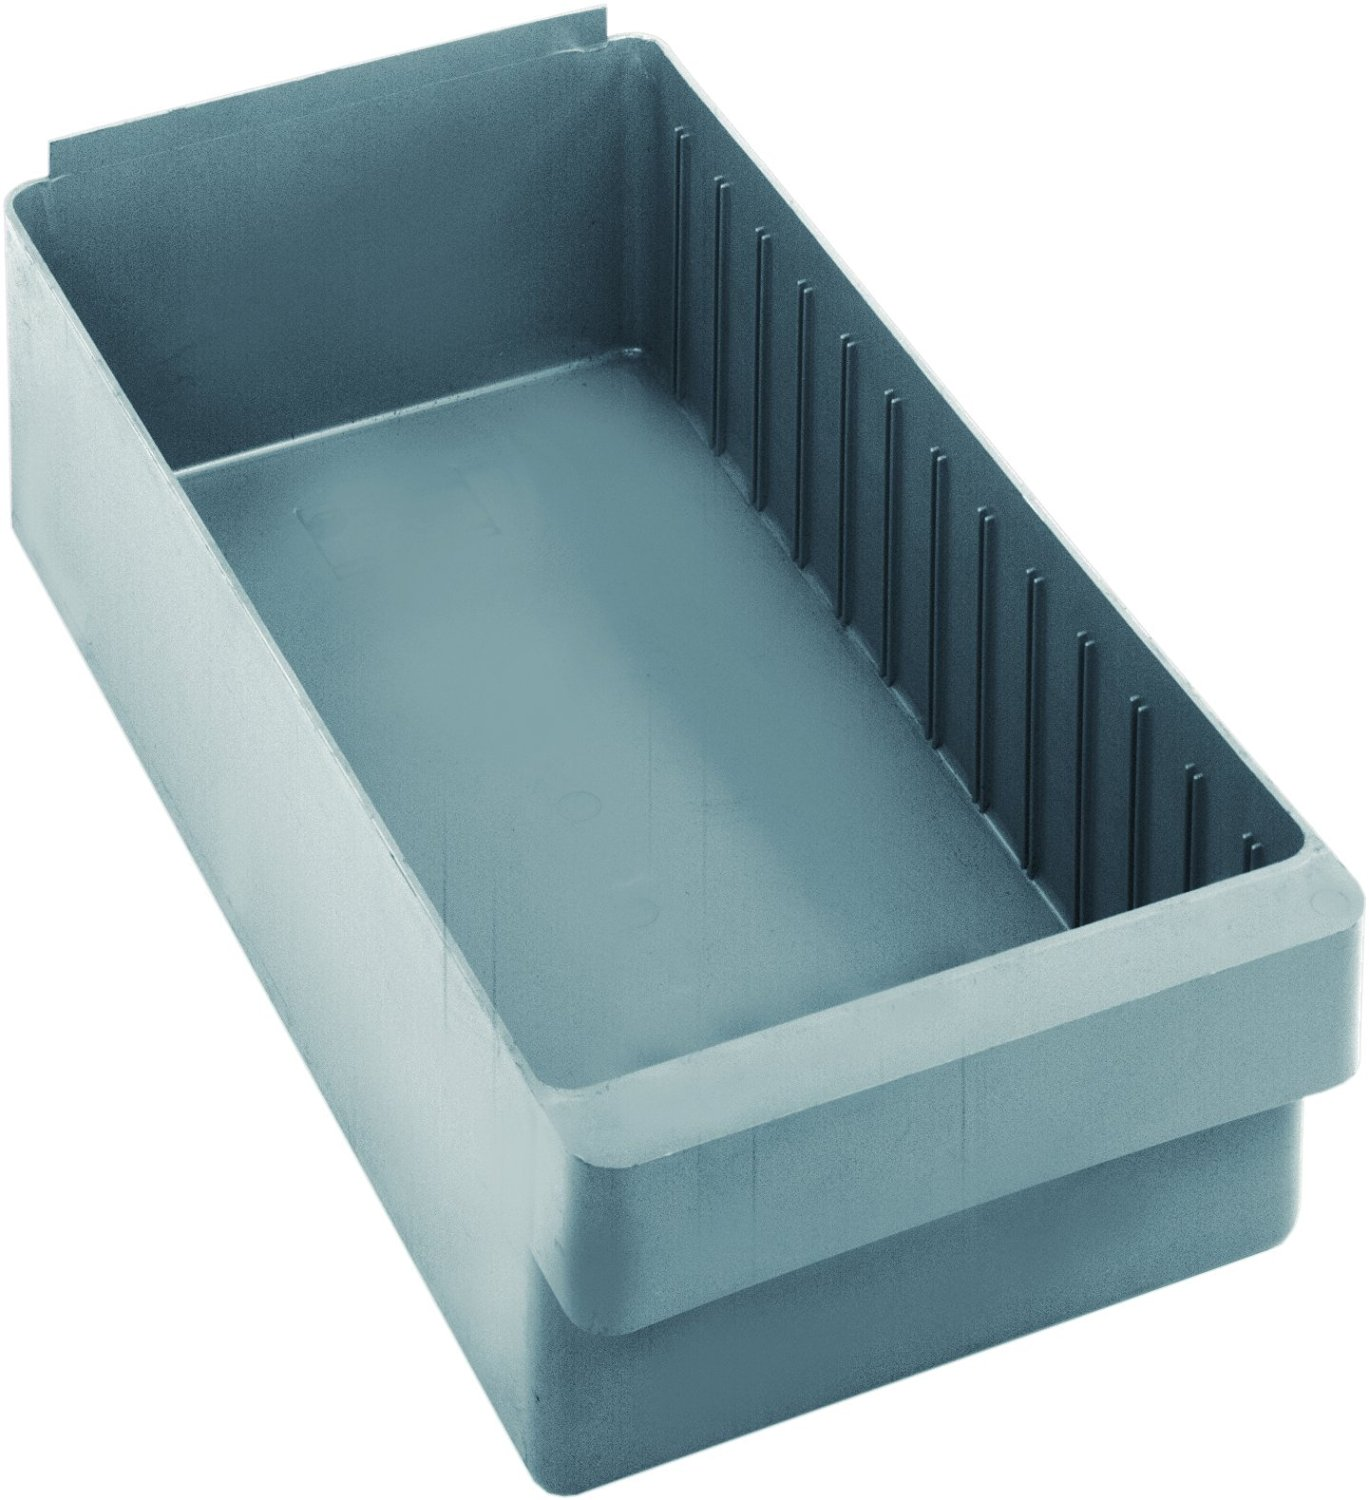 """Quantum Storage Systems QED606GY Super Tuff Euro Drawers, 17-5/8"""" L x 8-3/8"""" W x 4-5/8"""" H, Gray (Pack of 24)"""